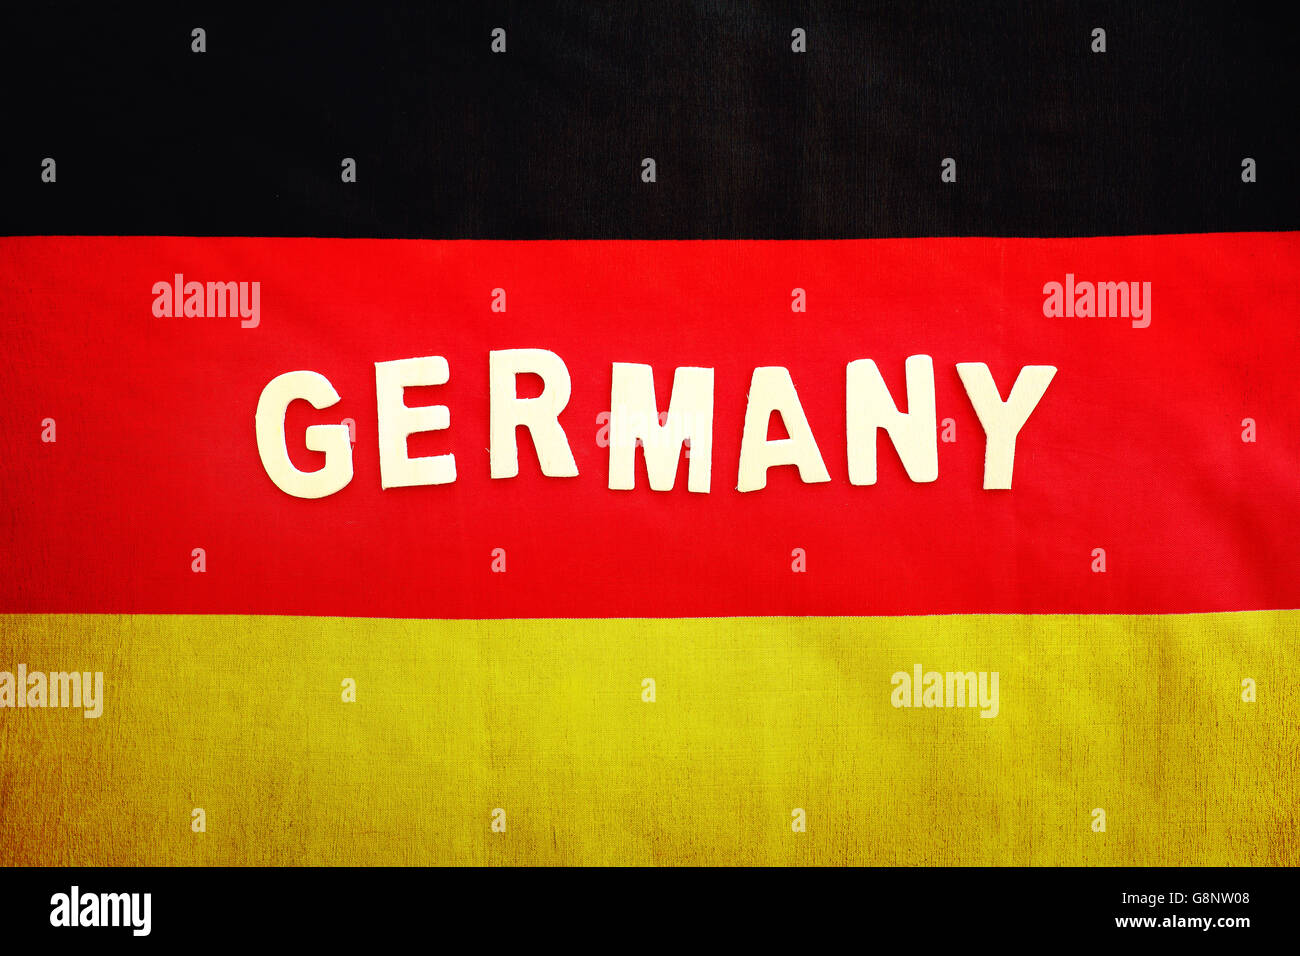 German flag, abstract background with text space, patriotic wallpaper for football fans - Stock Image